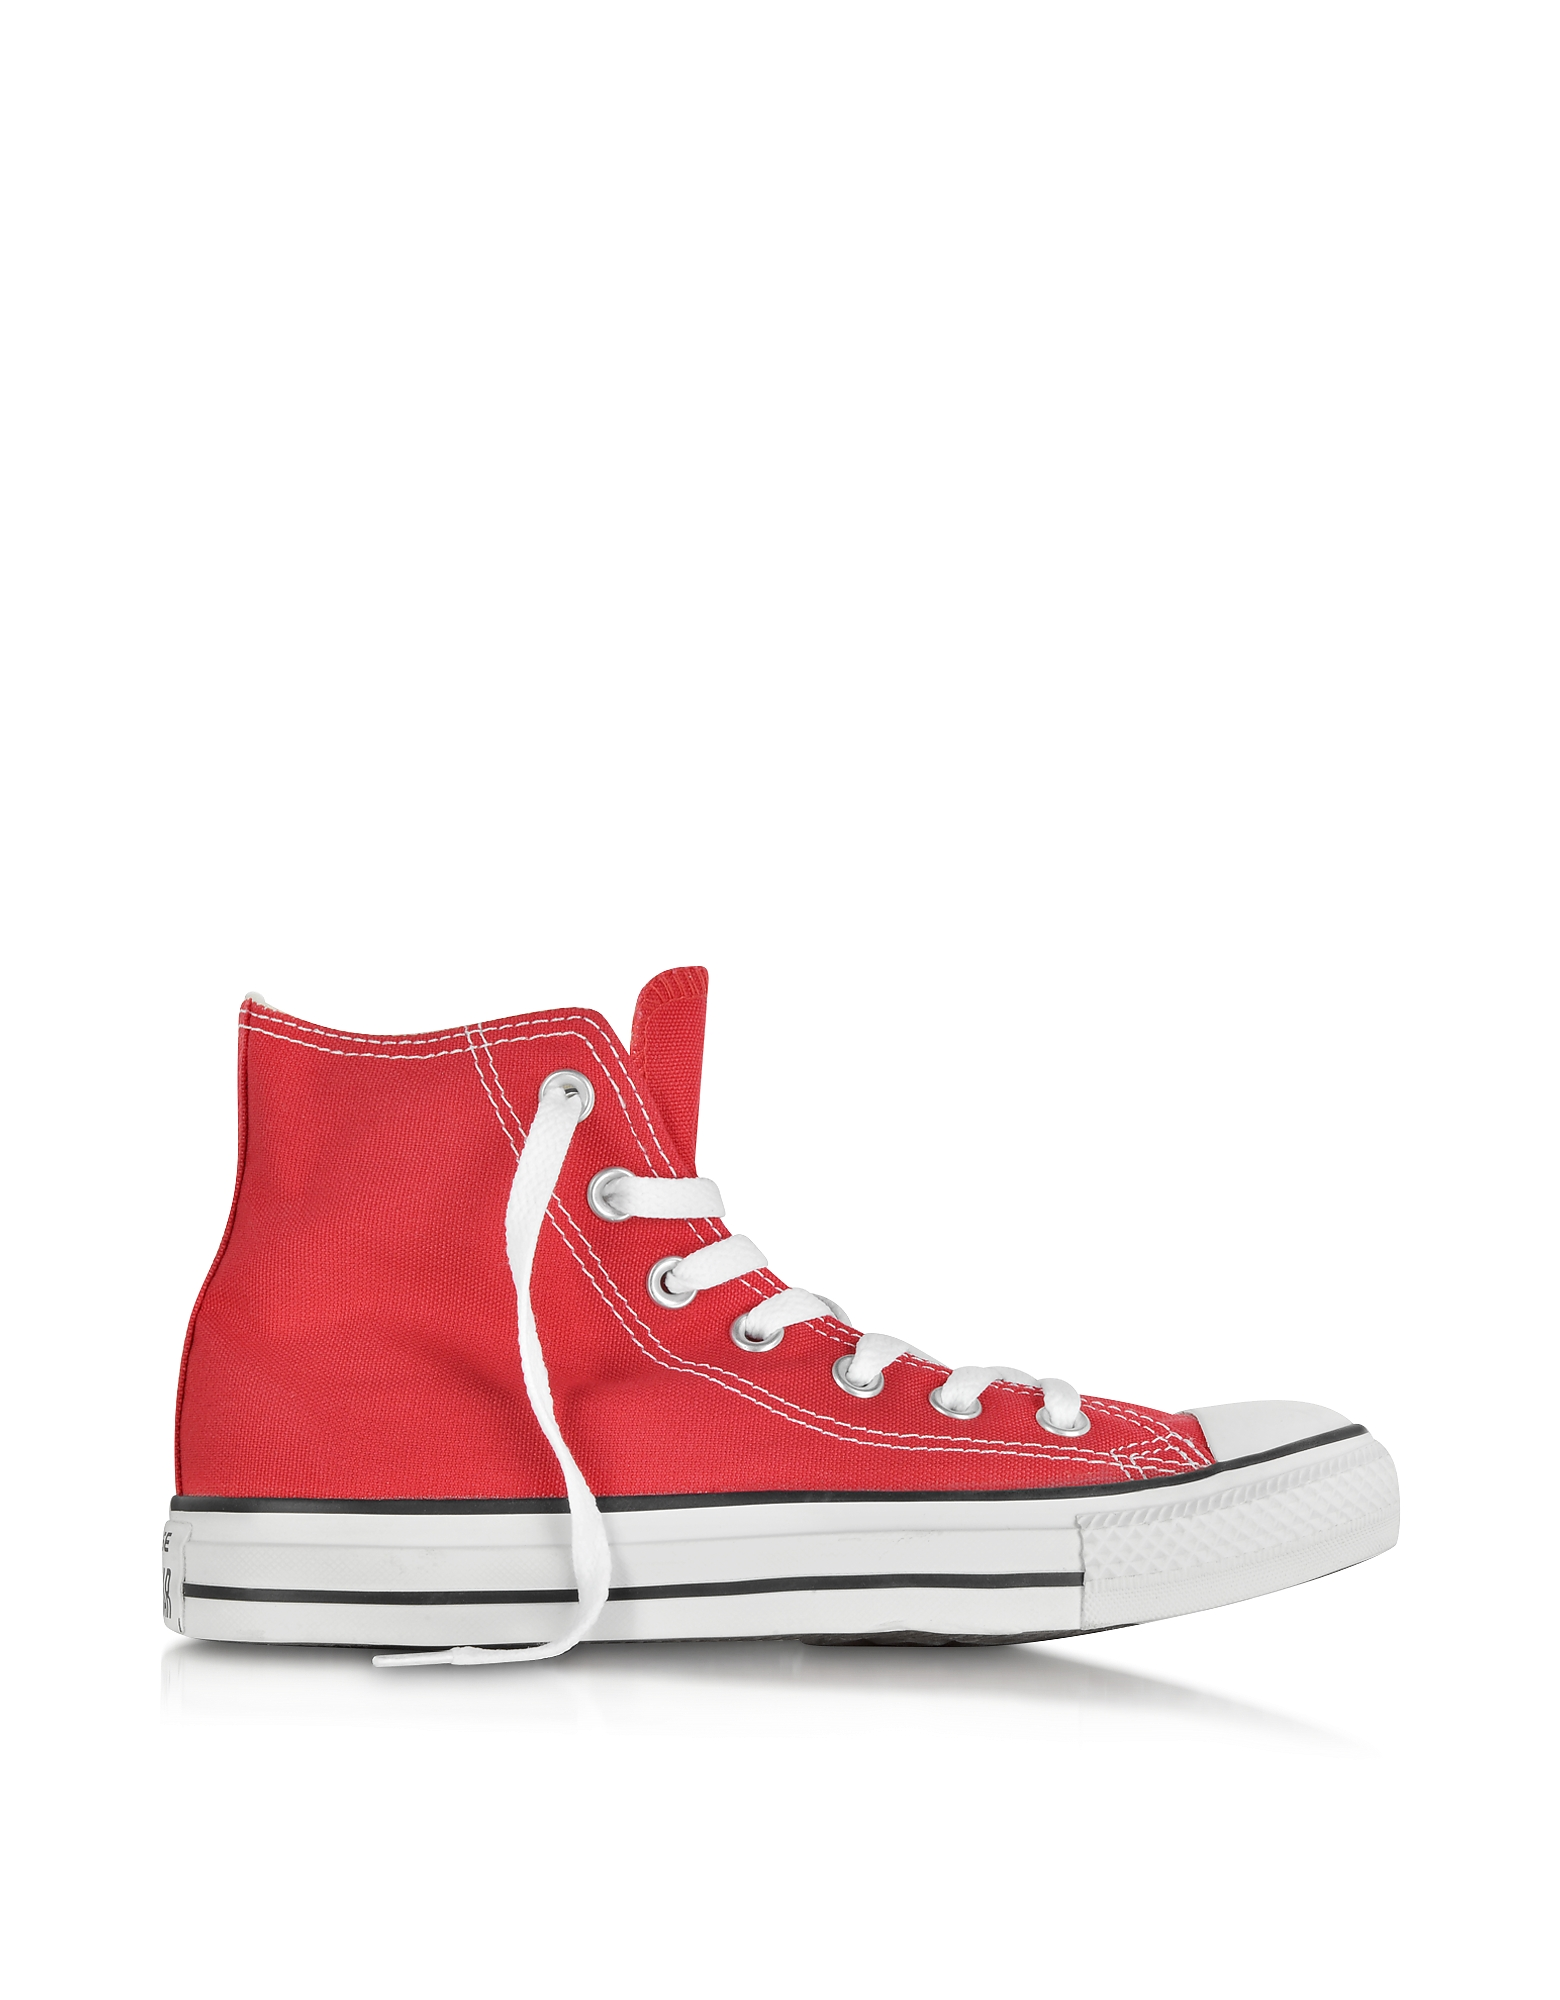 Converse Limited Edition Shoes, All Star Red Canvas High Top Sneaker